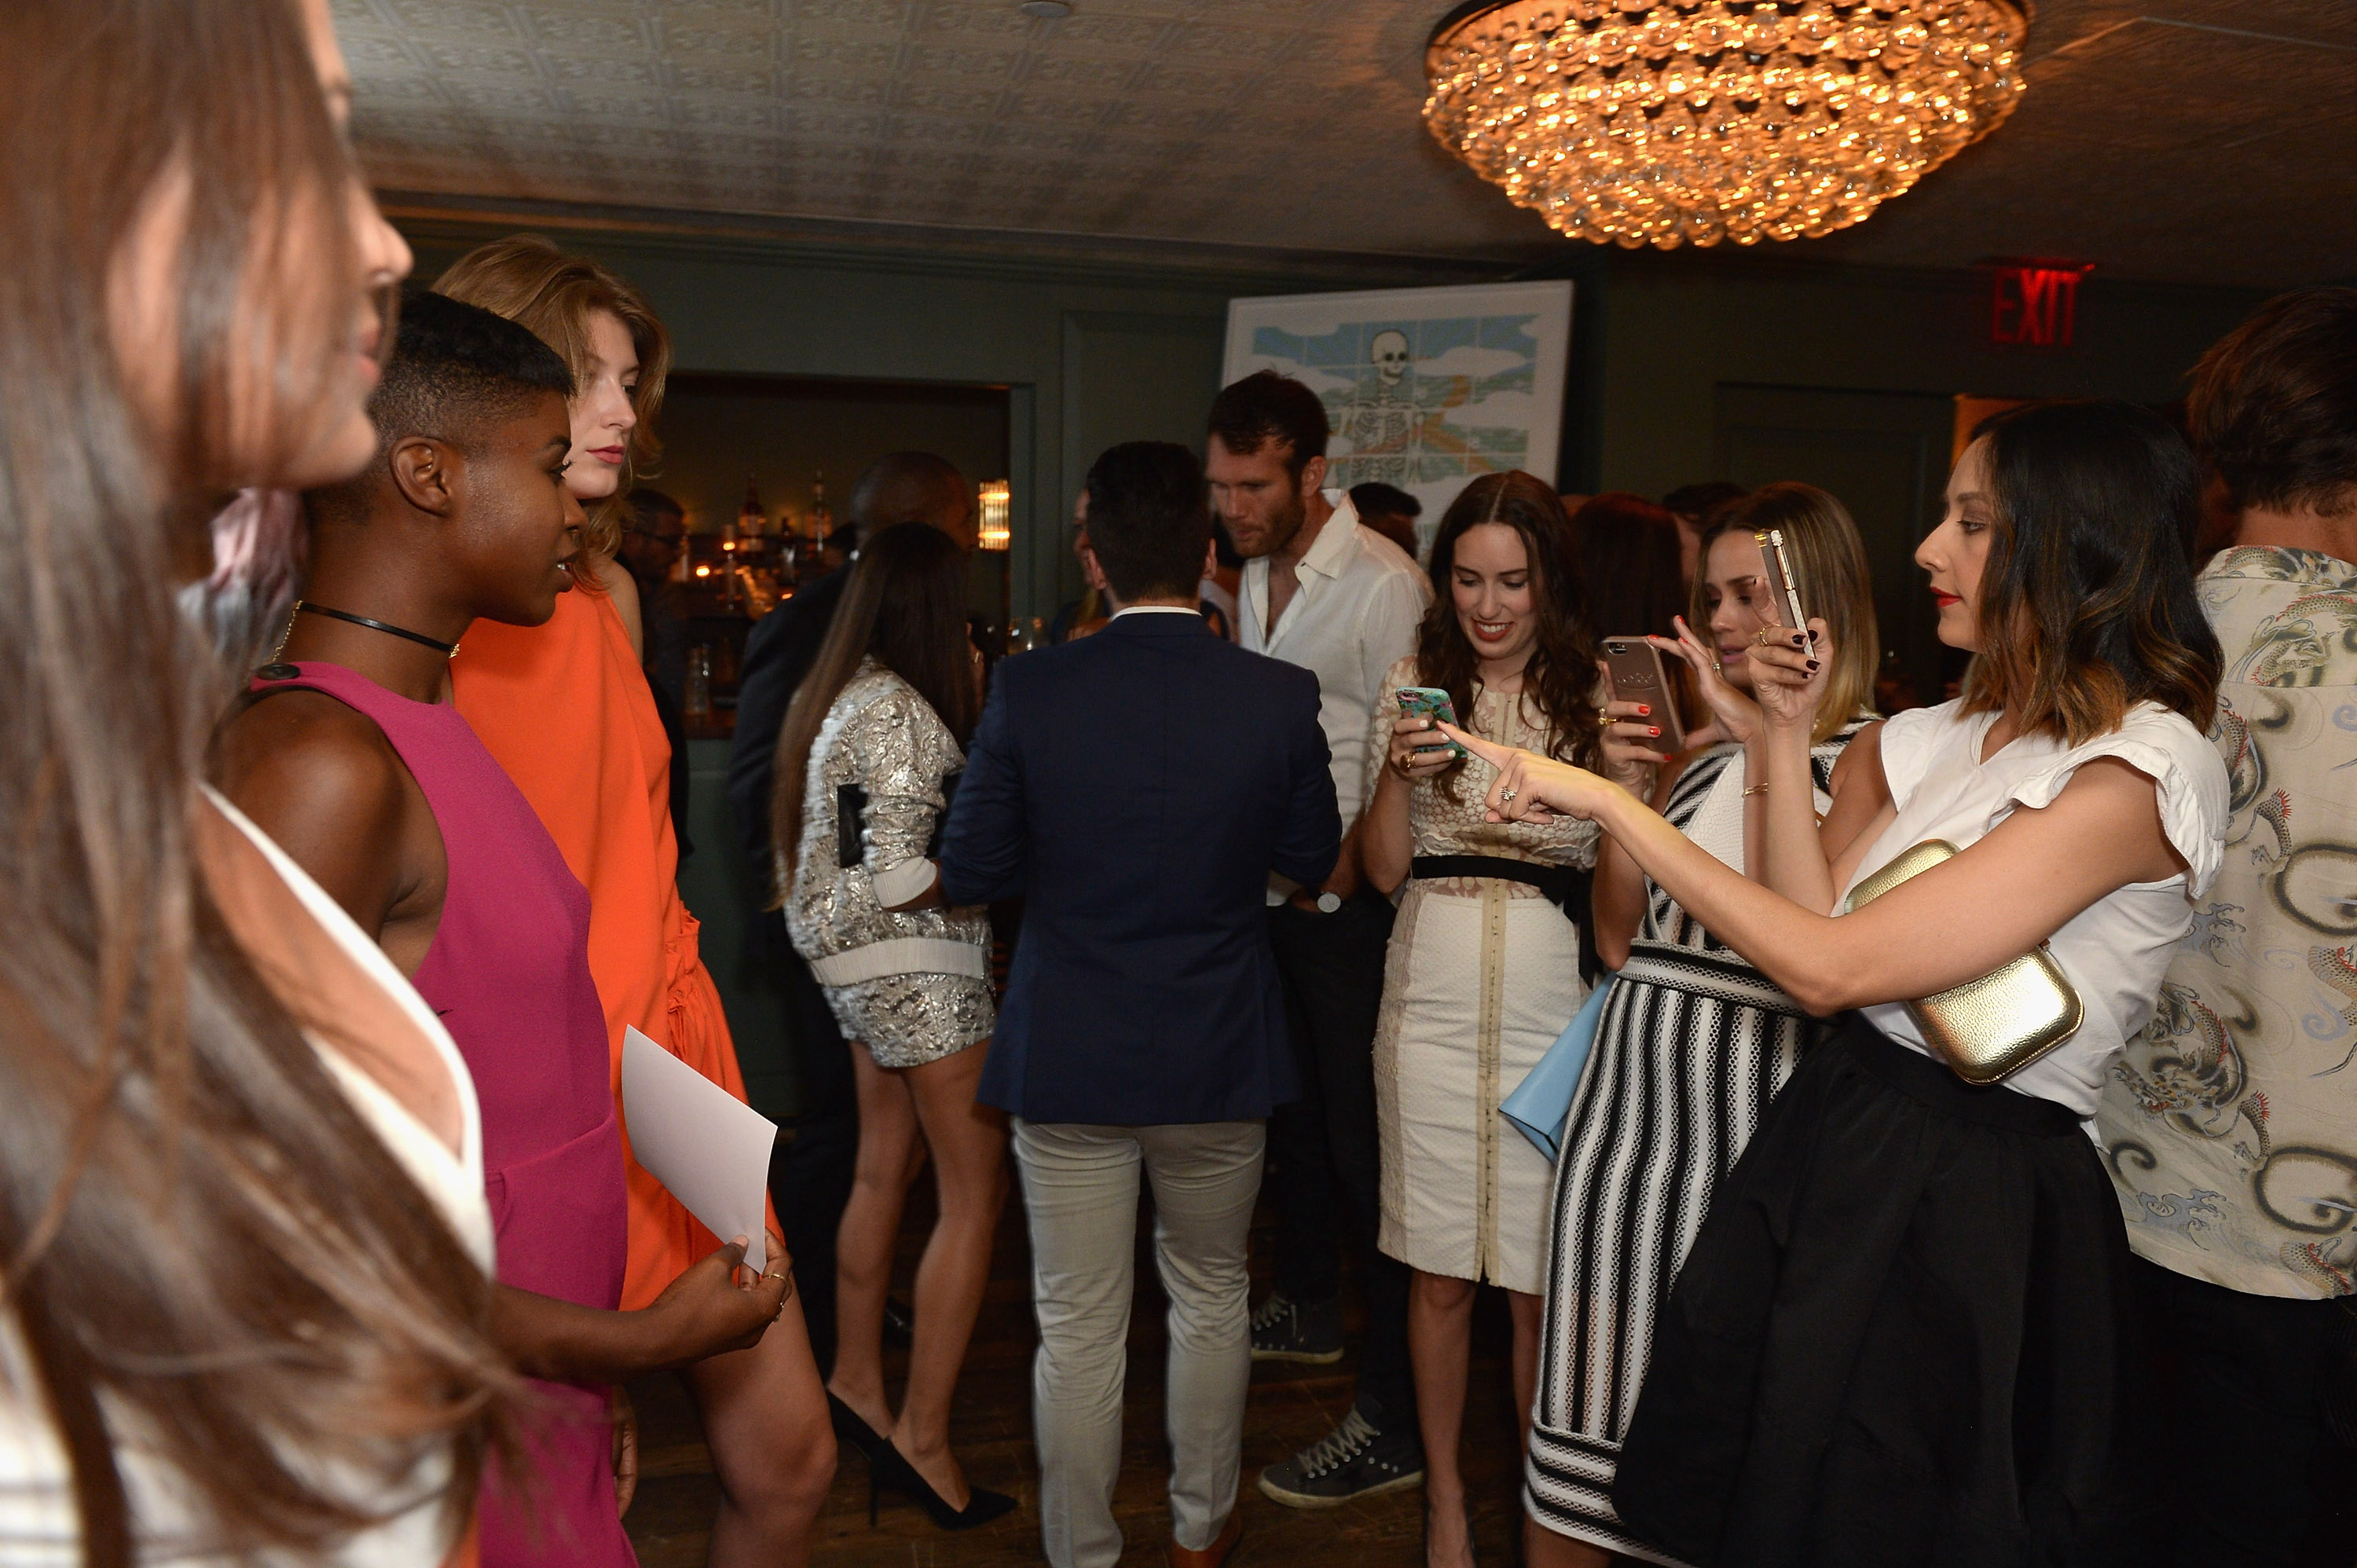 NEW YORK, NY - AUGUST 11: Bloggers photograph models at the Ego Soleil Fashion Label Launch of SS17 Fashion Collection in New York City on August 11, 2016 in New York City. (Photo by Andrew Toth/Getty Images for Ego Soleil)